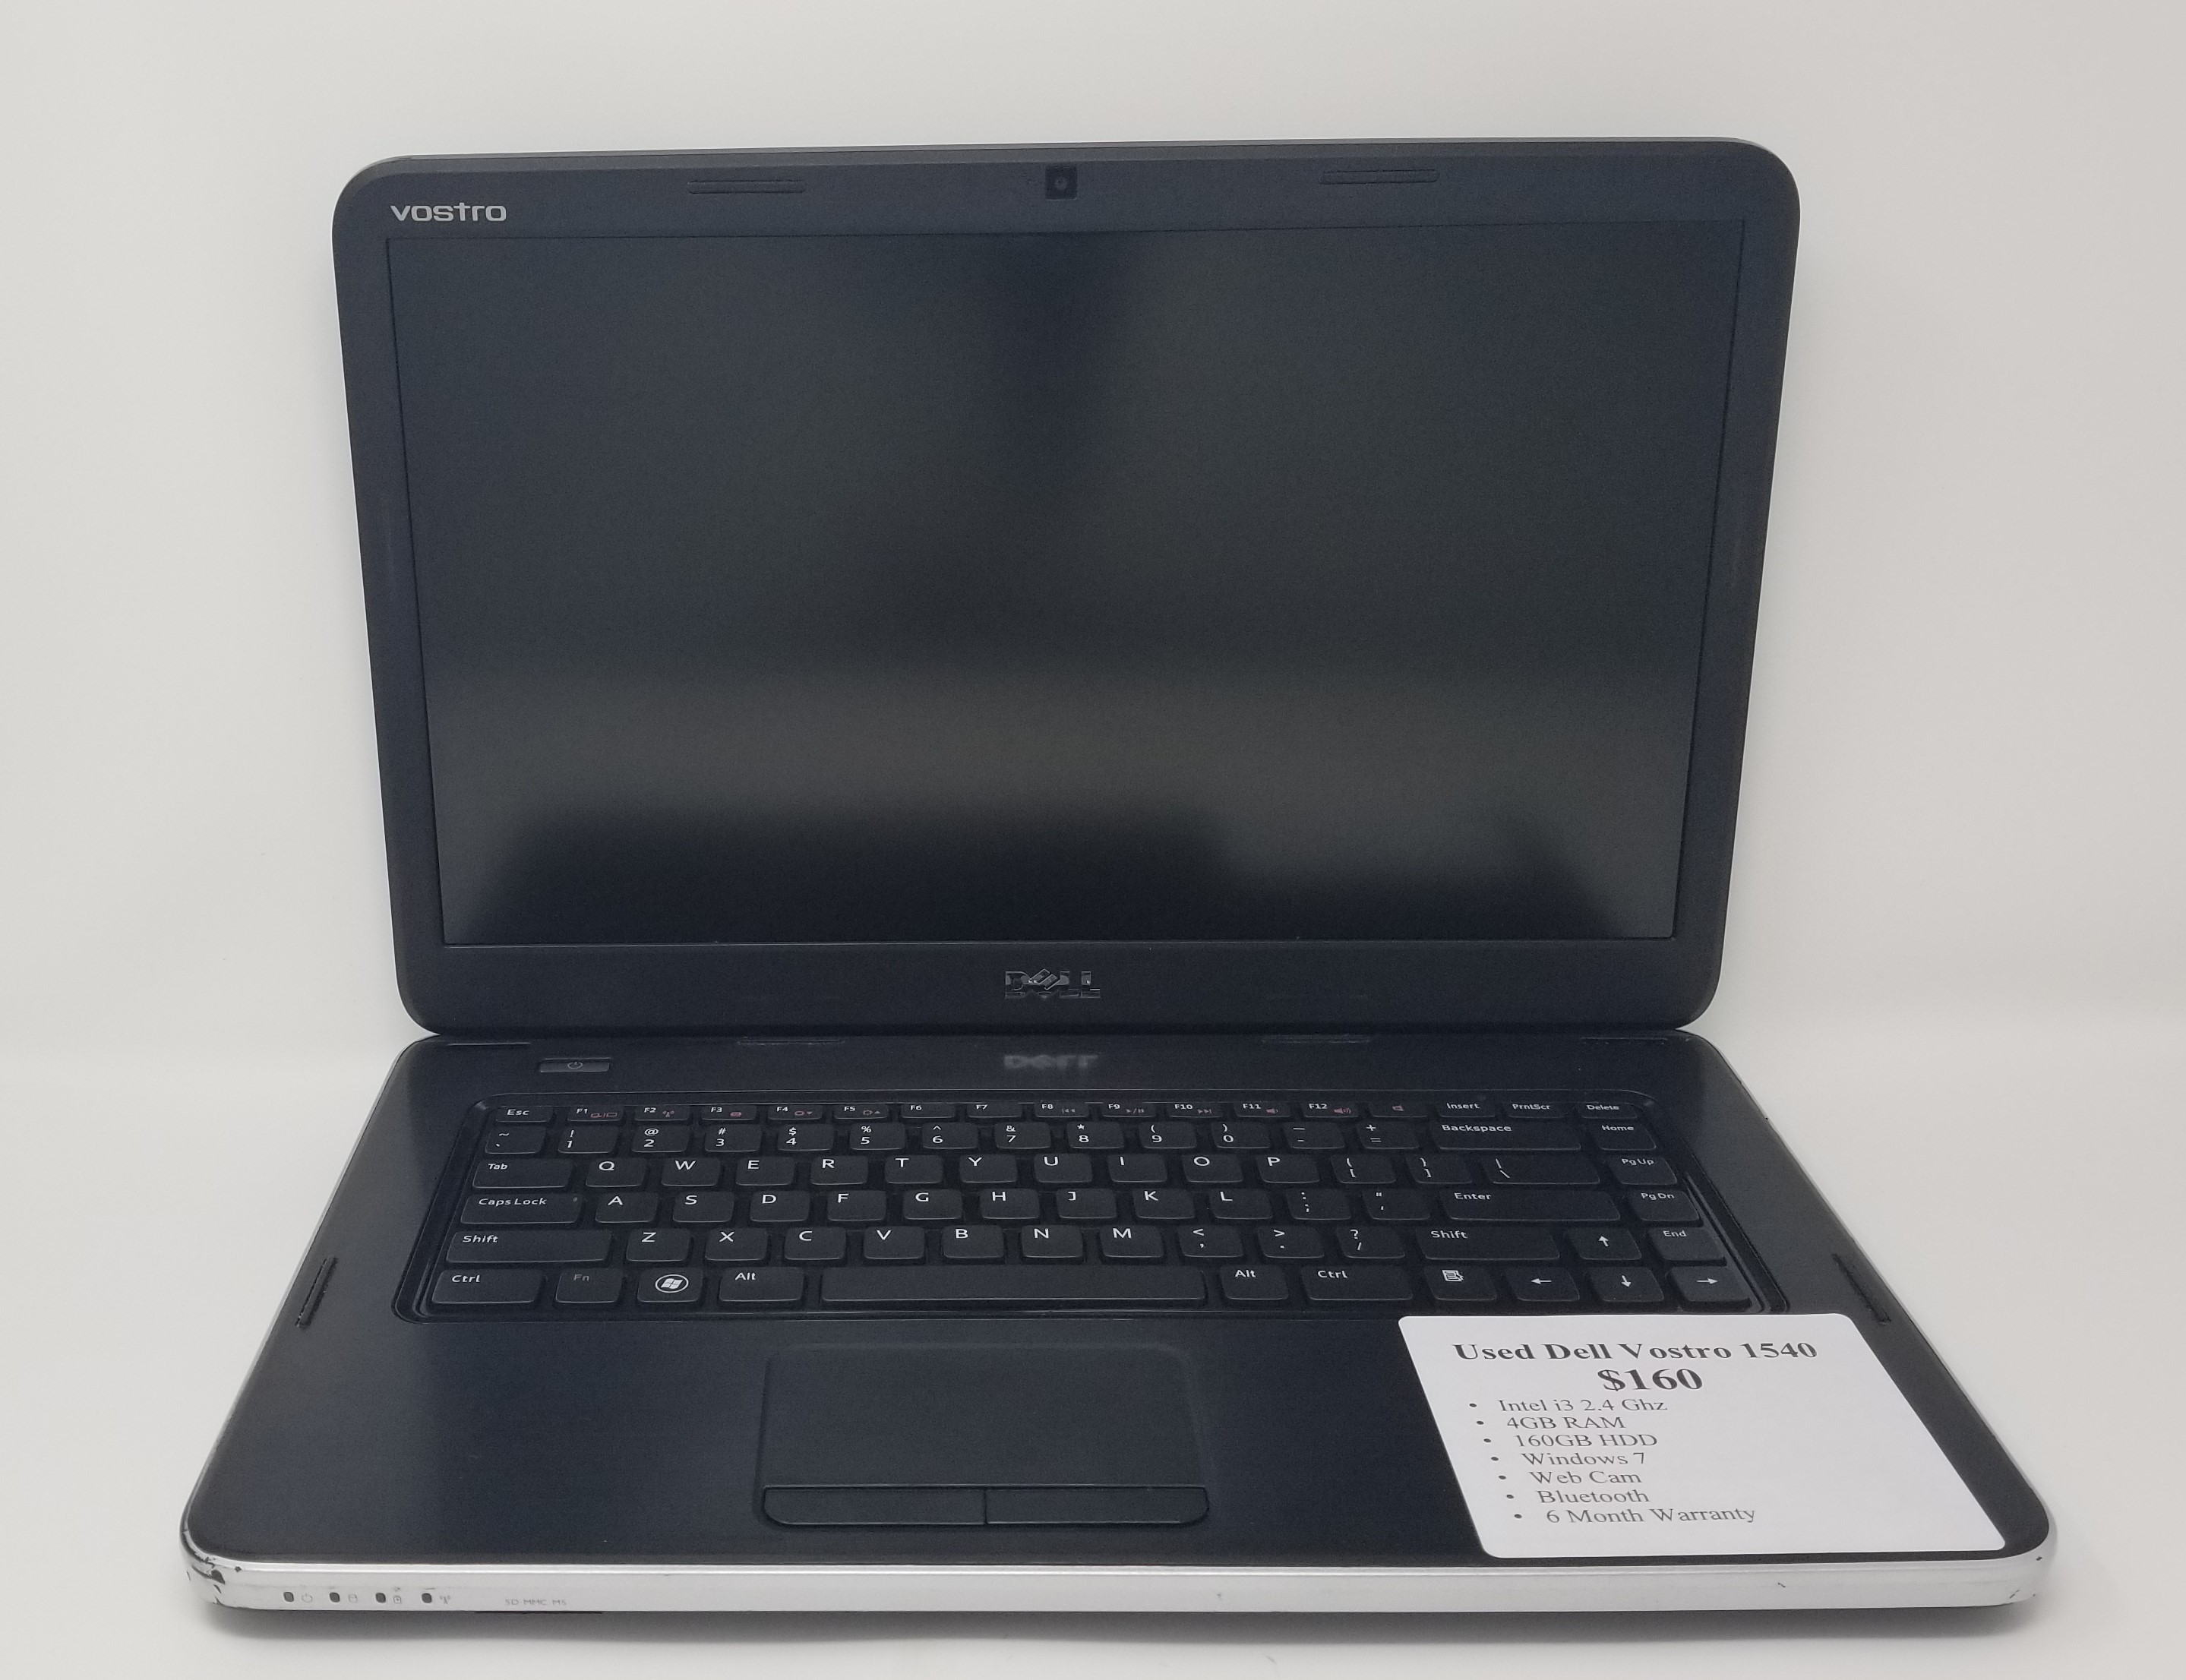 ddd11740bc Used and Refurbished Laptops for Sale | Computers R Us